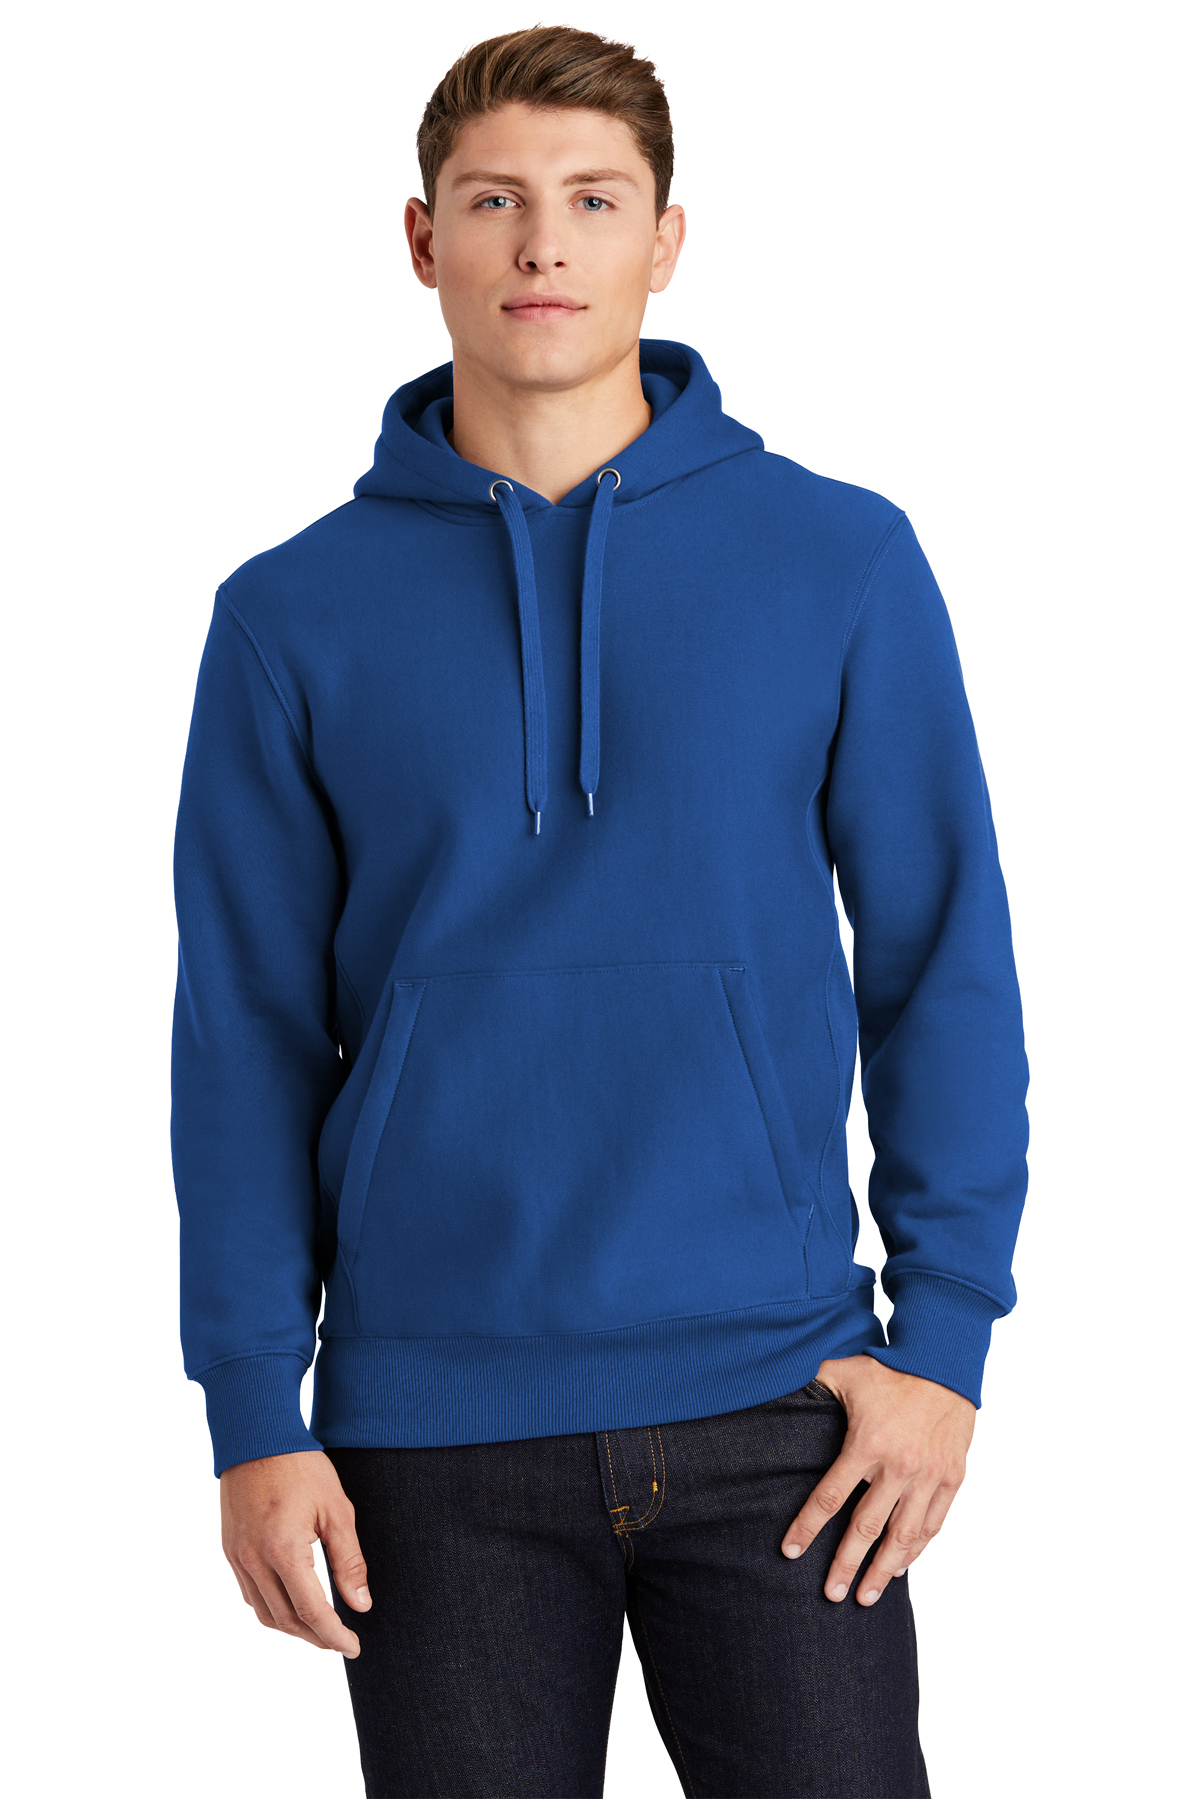 Sport Tek Super Heavyweight Pullover Hooded Sweatshirt Heavyweight Sweatshirts Fleece Sanmar Sportek poly sweater fleece pfp for sublimation, breathable warm and lightweight for traditional sweaters, vests, light hoodies and jacket content: sport tek super heavyweight pullover hooded sweatshirt heavyweight sweatshirts fleece sanmar